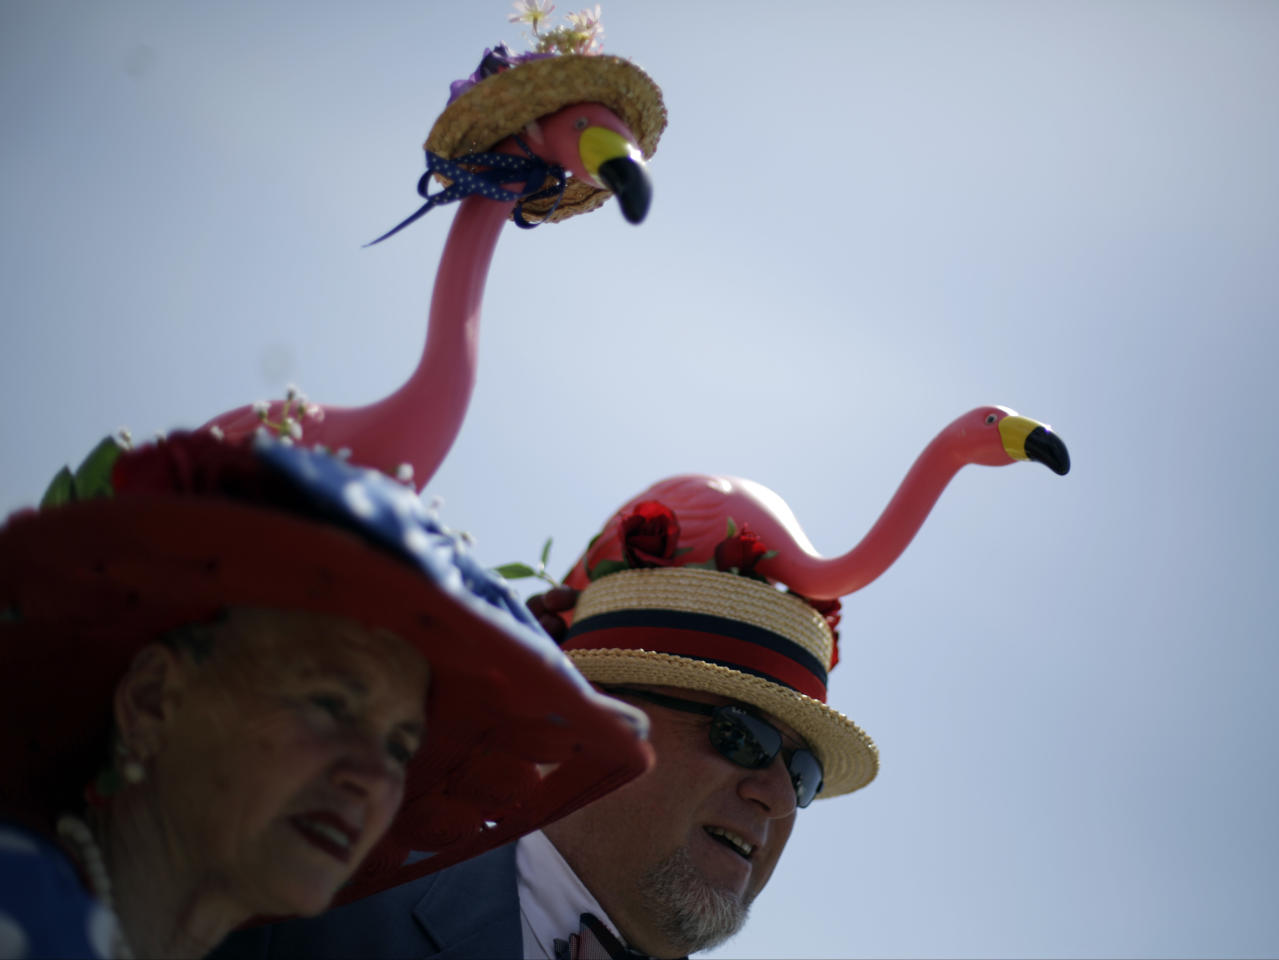 Scott and Jan Baty of Traverse City, Mich., look around before the 140th running of the Kentucky Derby horse race at Churchill Downs Saturday, May 3, 2014, in Louisville, Ky. (AP Photo/David Goldman)